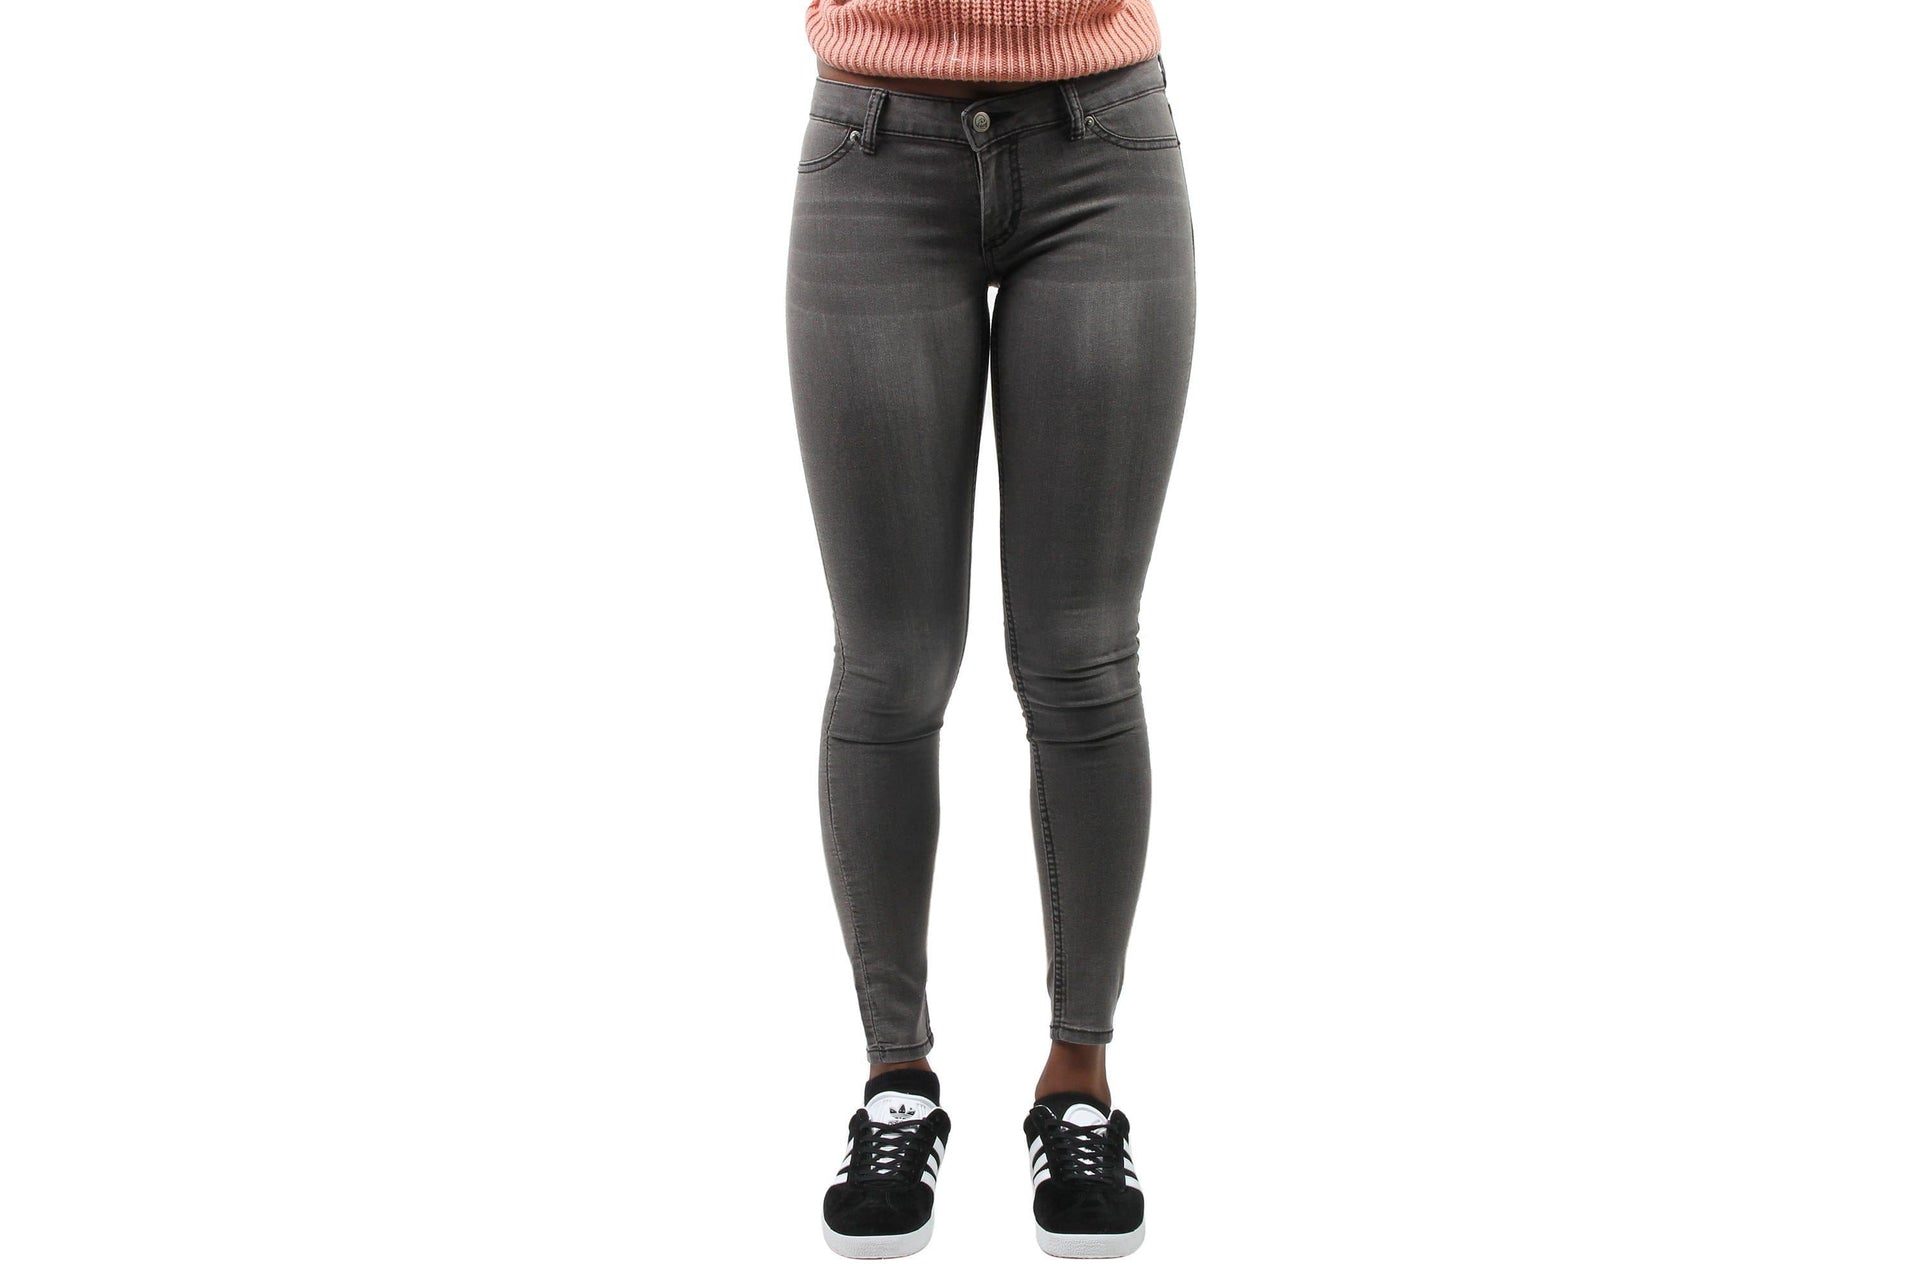 LOW SPRAY PANT WOMENS SOFTGOODS CHEAP MONDAY GREAT GREY 26-27